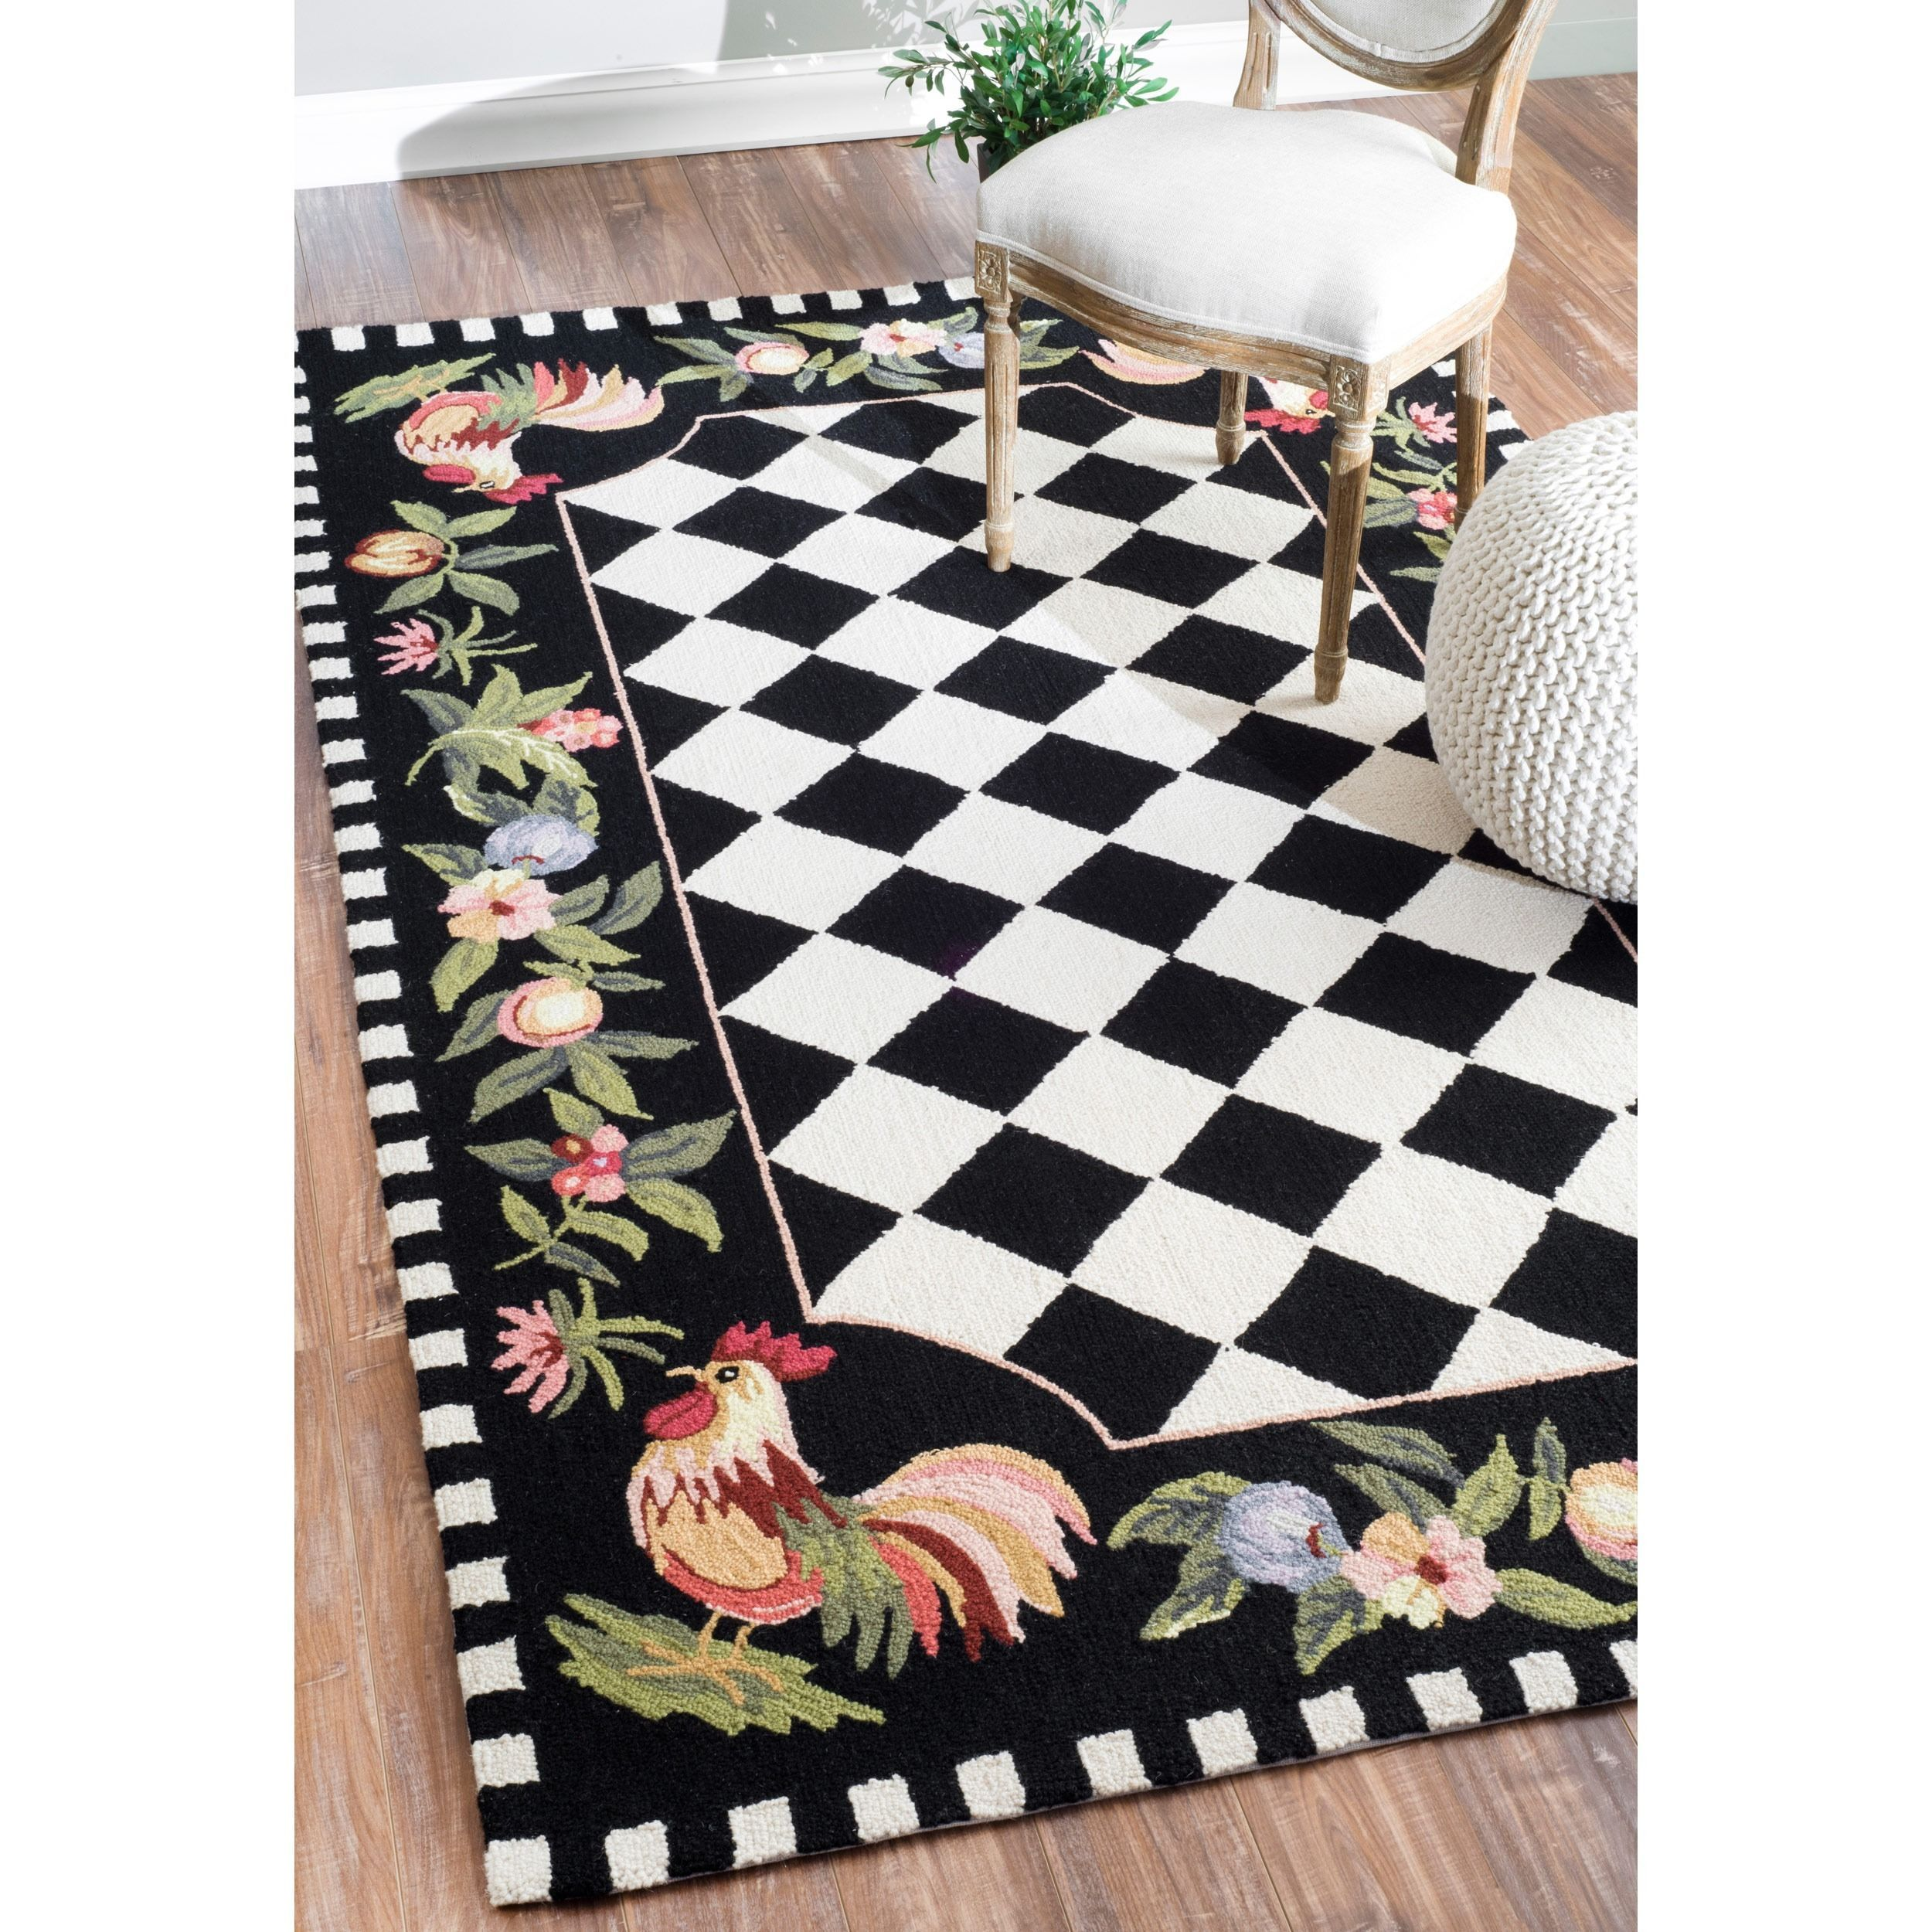 NuLOOM Hand Hooked Moroccan Rooster Checkered Wool Rug X   Overstock™  Shopping   Great Deals On Nuloom   Rugs